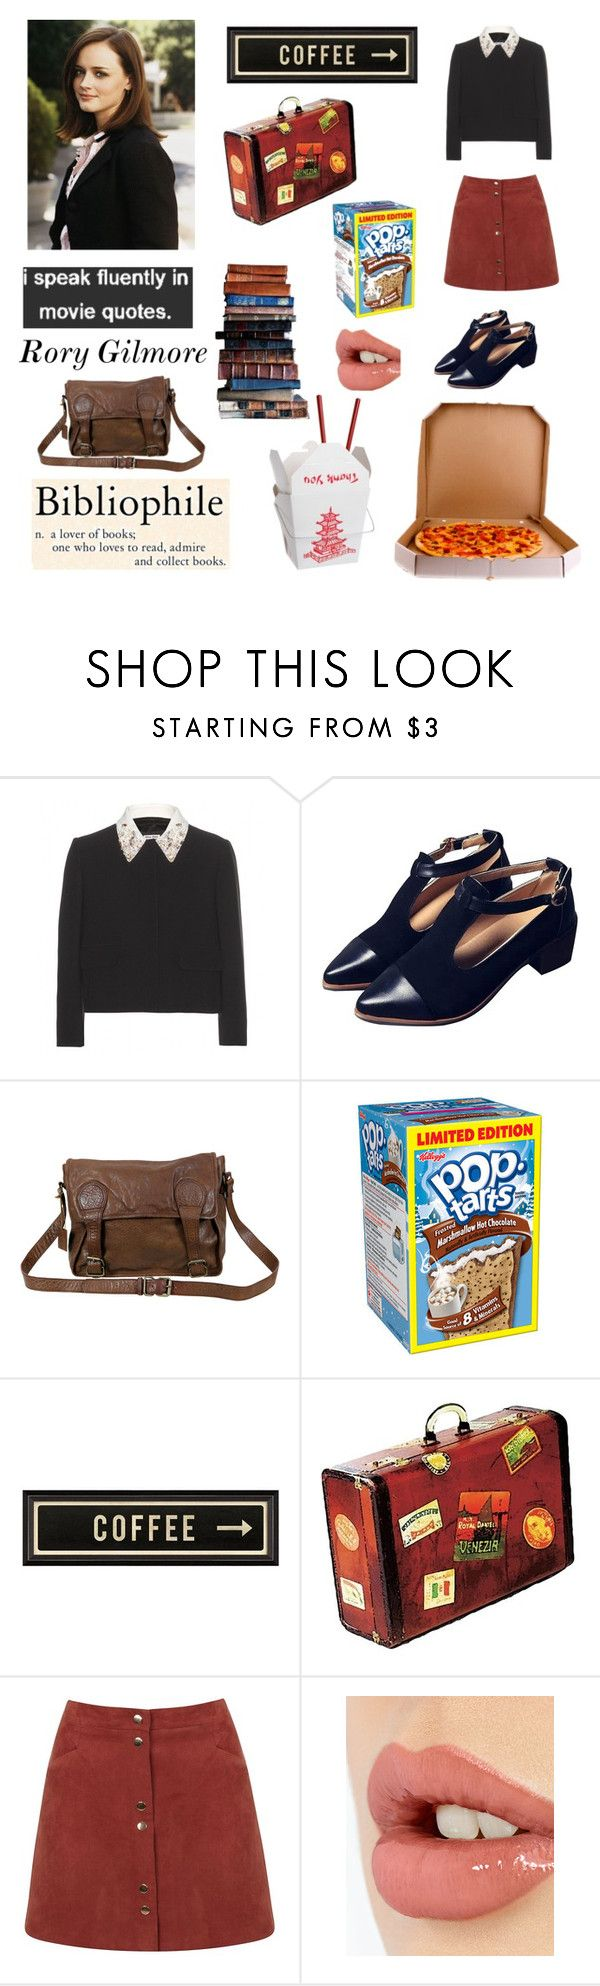 """""""Rory Gilmore"""" by barbiedollgrunge ❤ liked on Polyvore featuring Miu Miu, KEEP ME, VIPARO, xO Design, Spicher and Company, Mark's Tokyo Edge, Miss Selfridge, Charlotte Tilbury, women's clothing and women"""